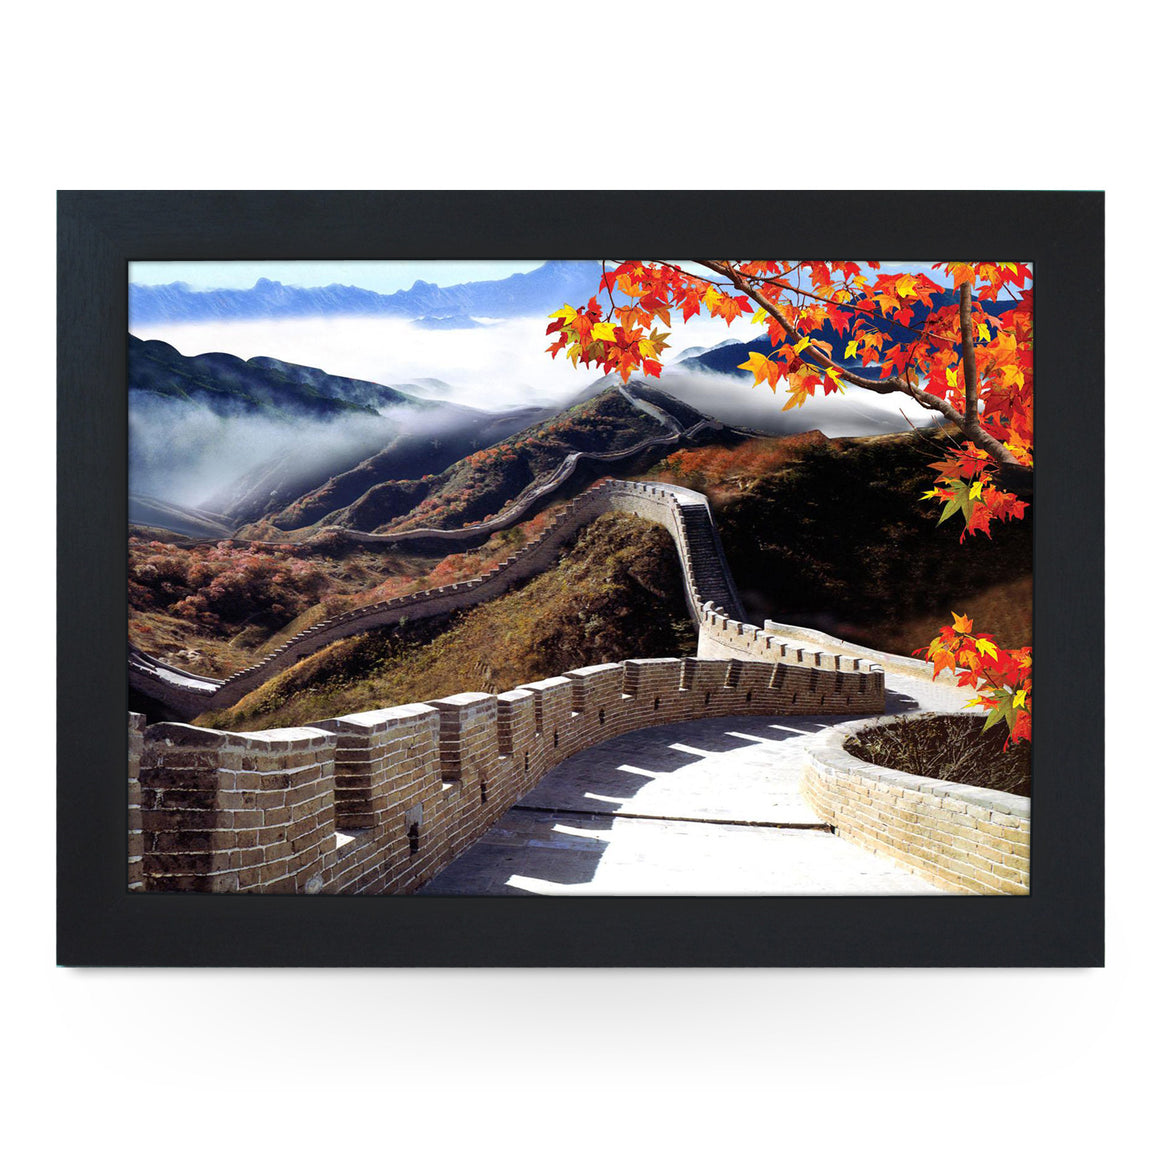 The Great Wall Of China Lap Tray - L0596